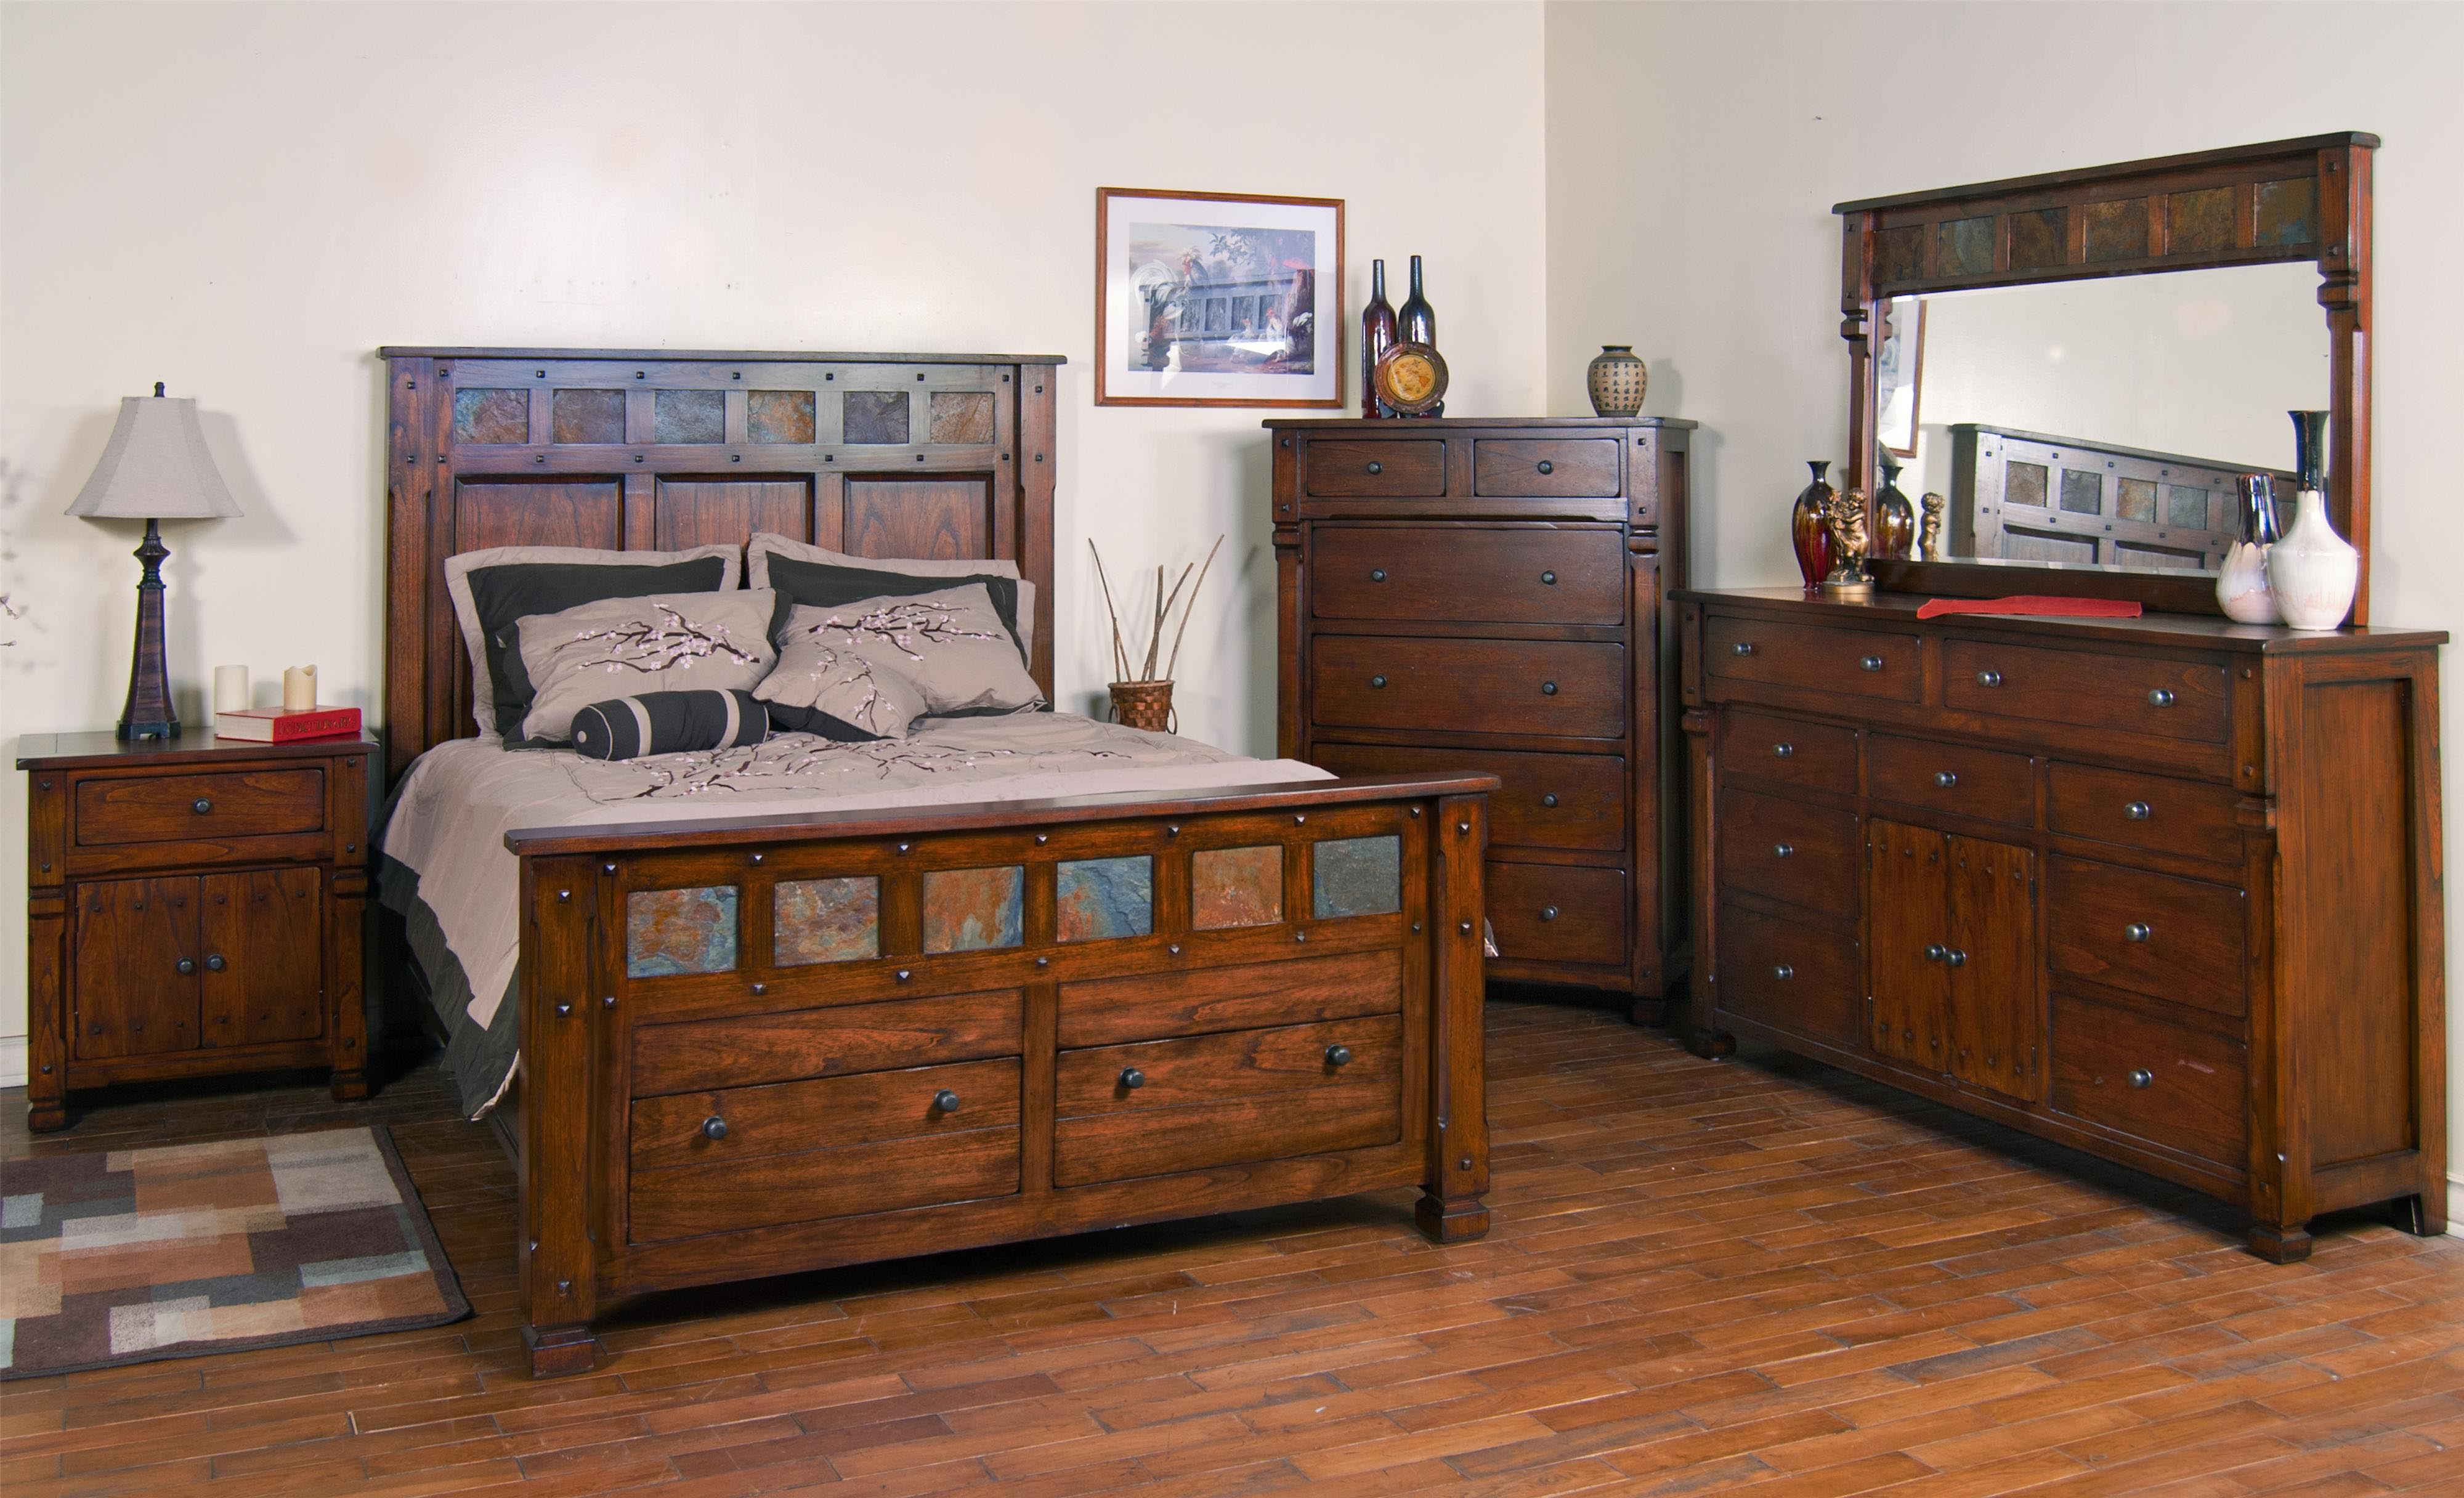 Mission style bedroom furniture best decor things for Mission style bedroom furniture